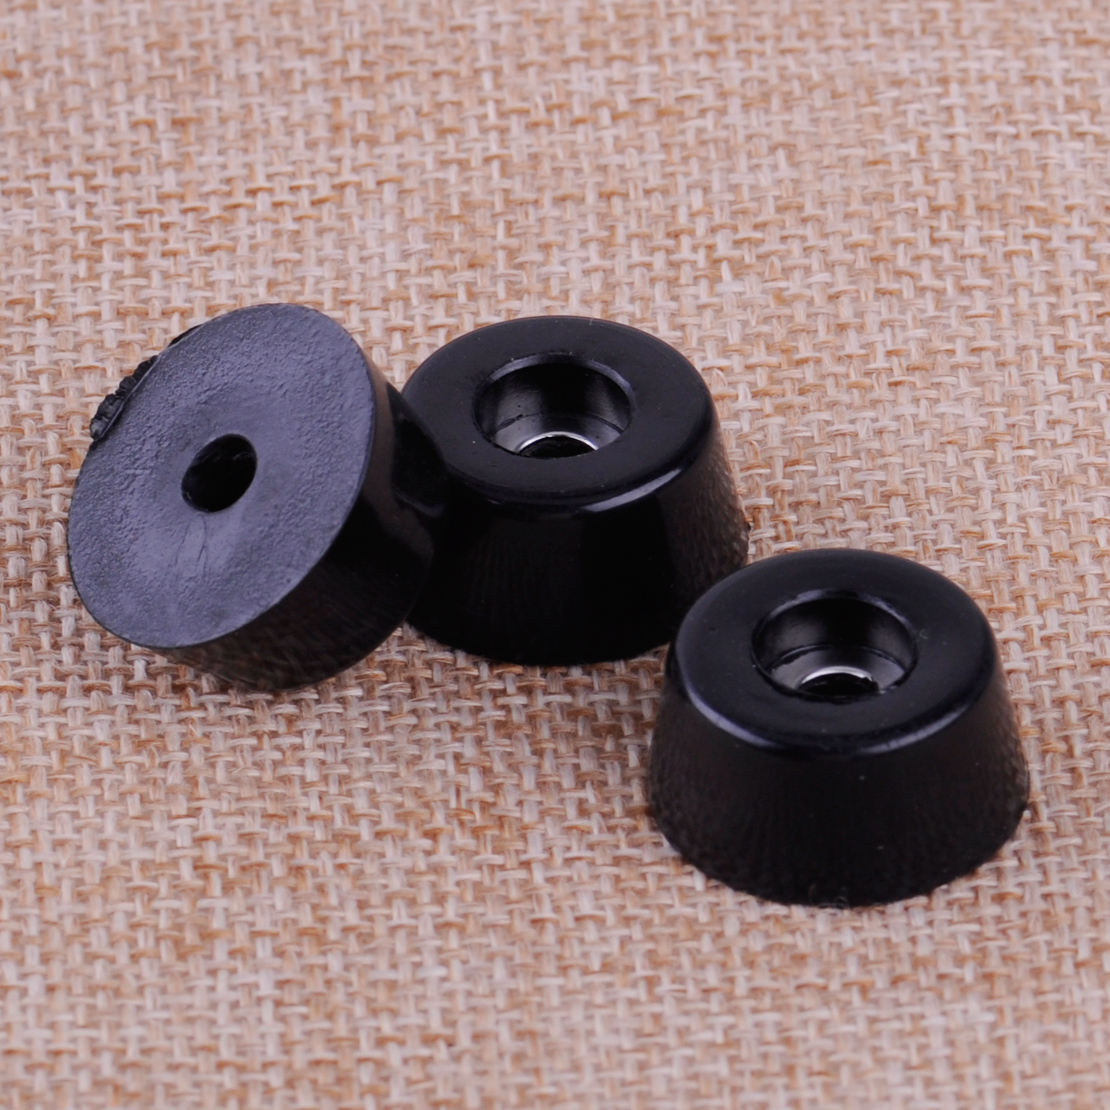 8pcs Black Speaker Cabinet Furniture Chair Table Box Conical Rubber Foot Pad Stand Shock Absorber S / M / L Skid Resistance